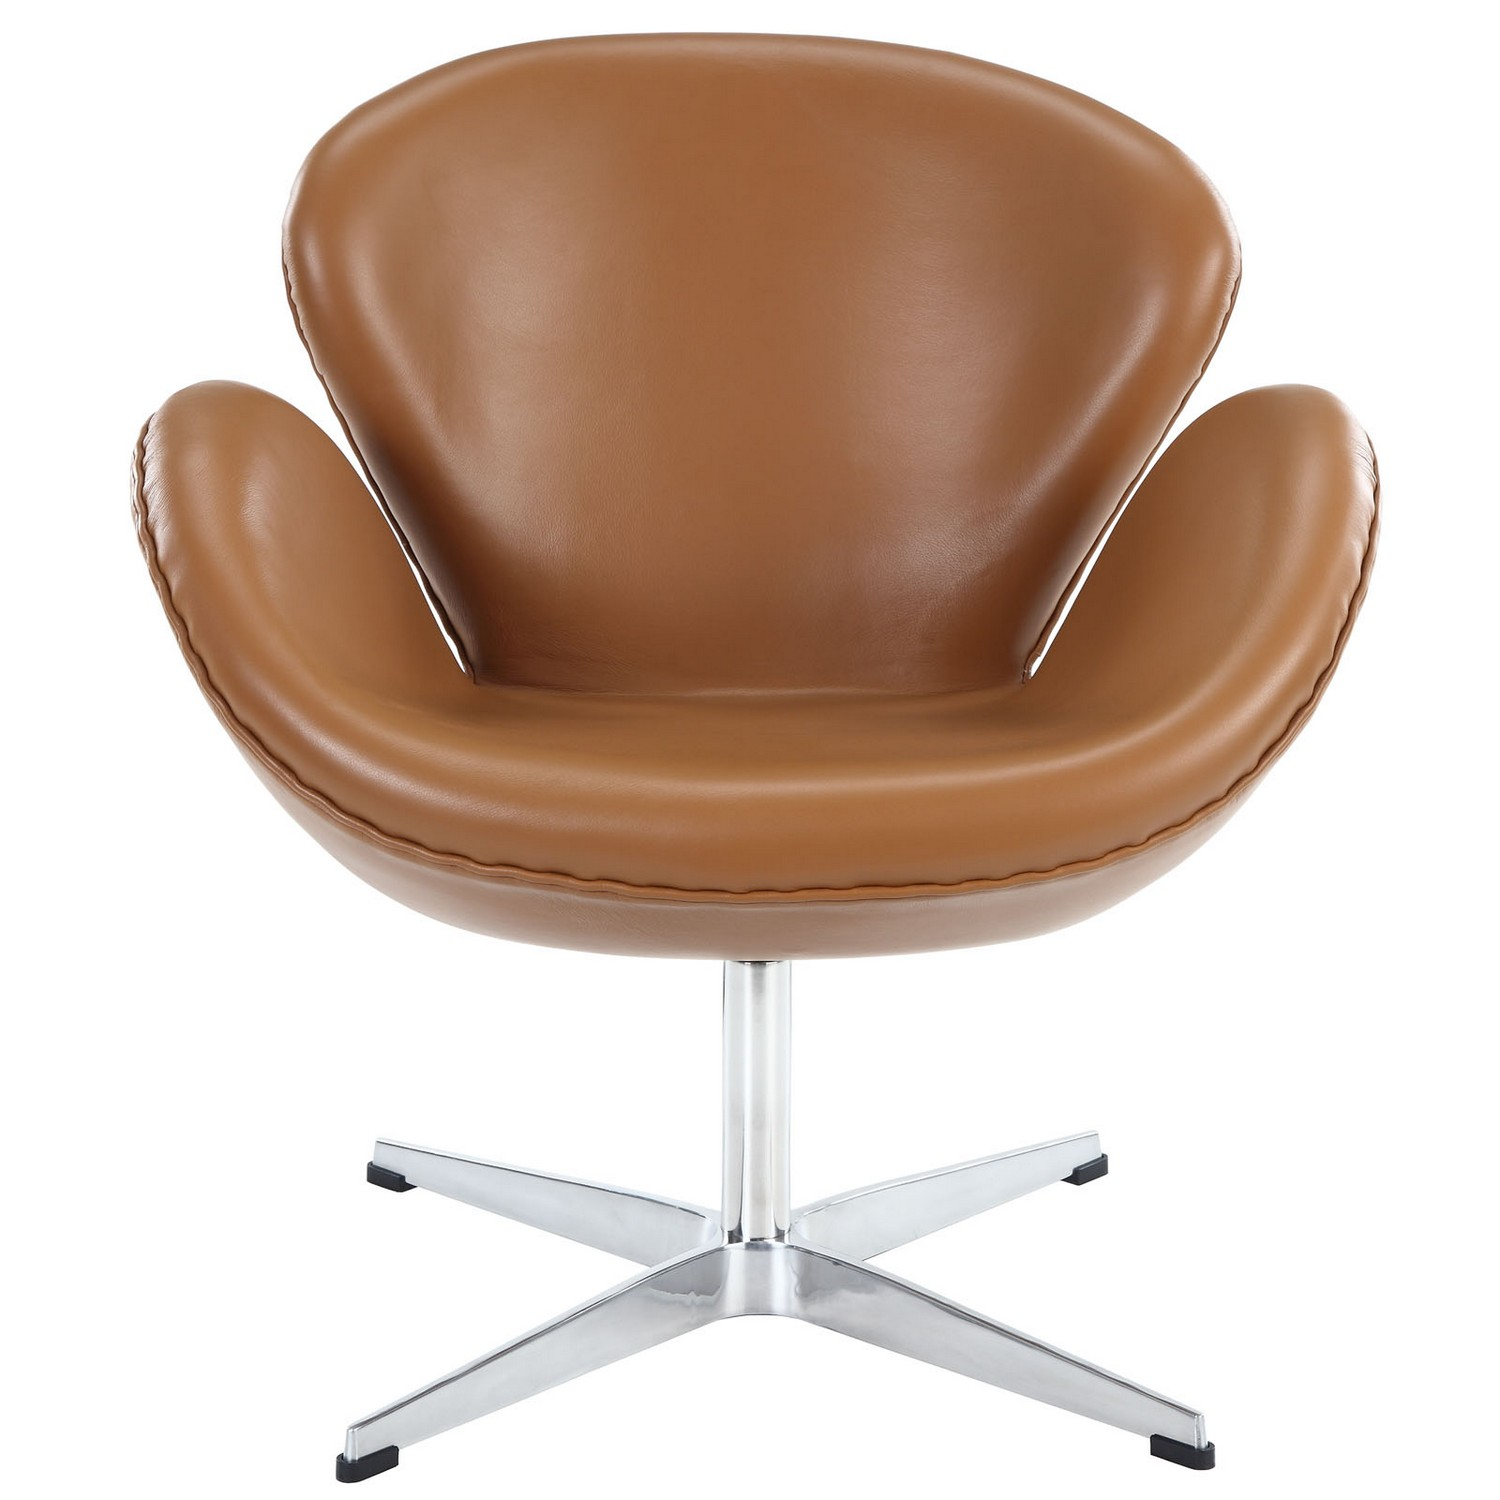 Modway Wing Leather Lounge Chair - Terracotta